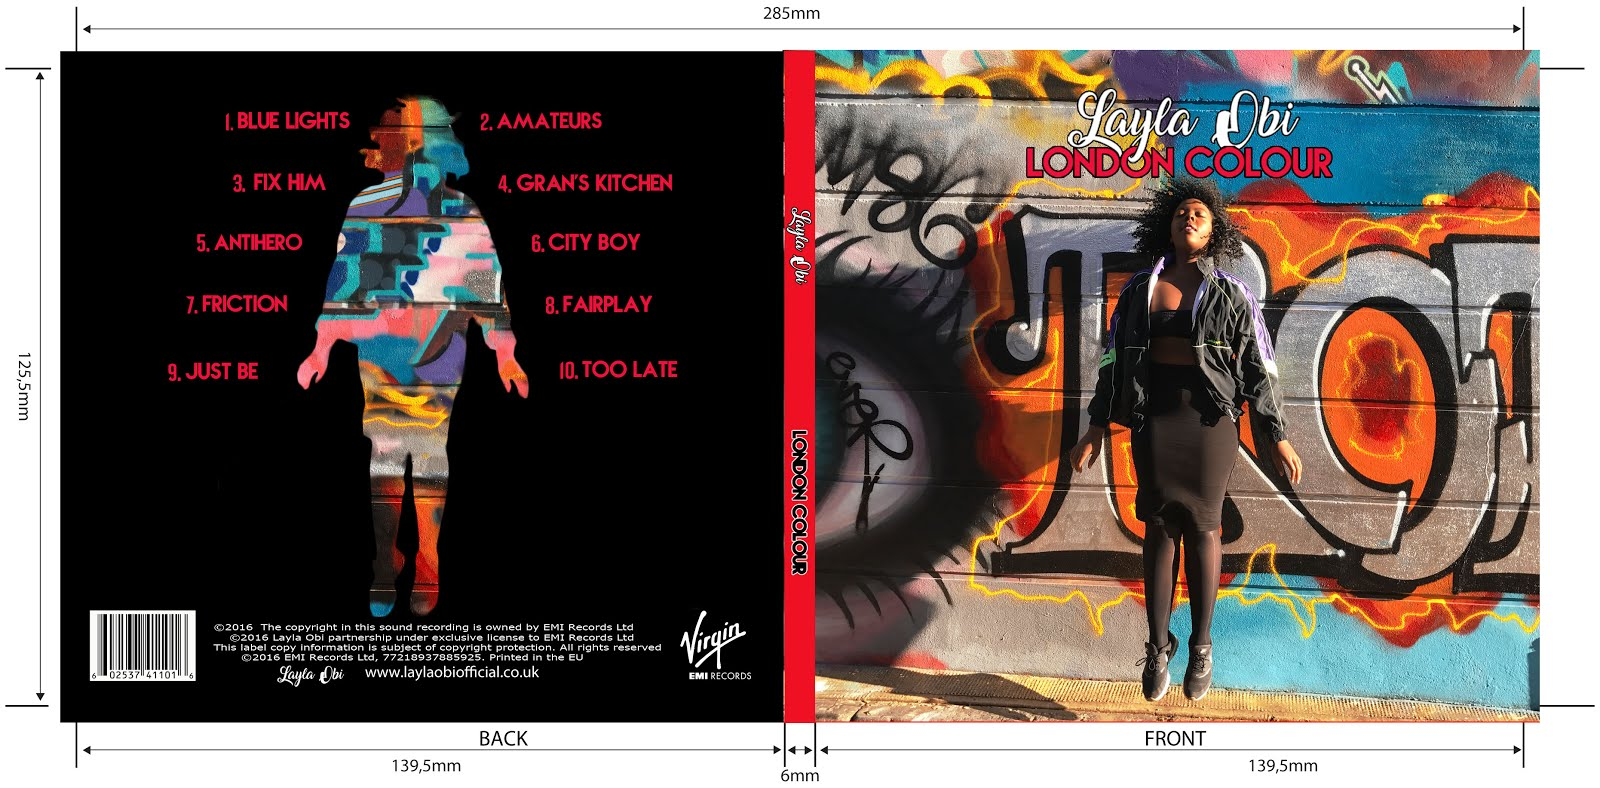 Our digipak front and back cover